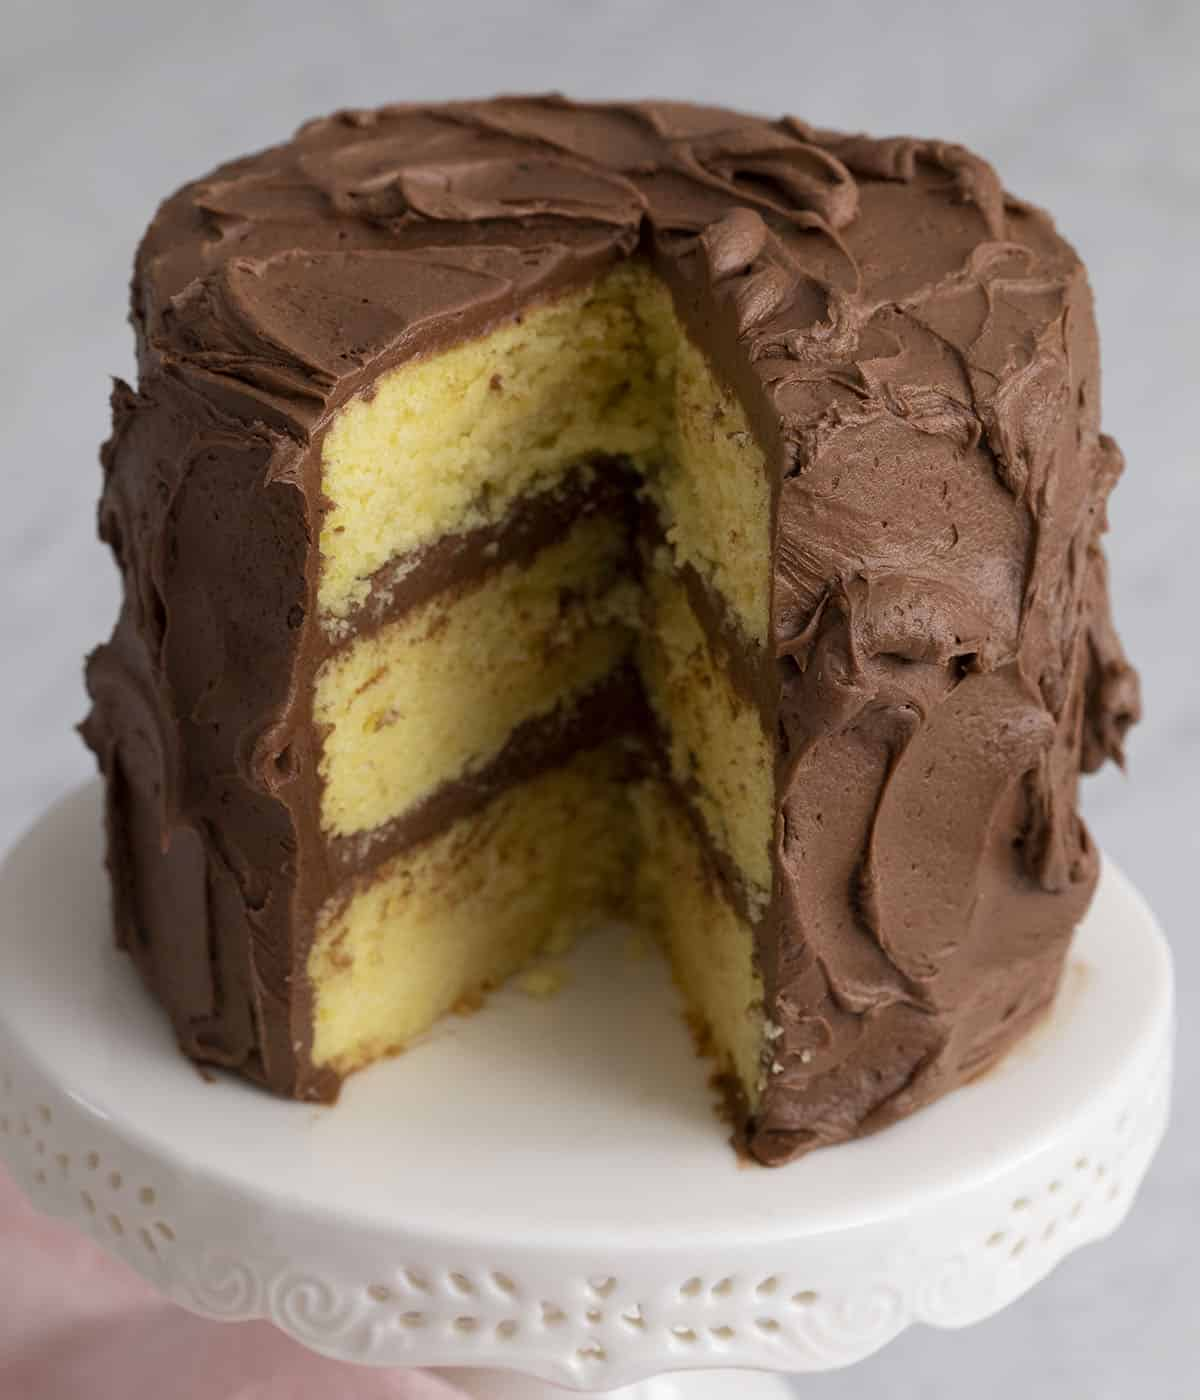 A three layer yellow cake with a piece cut out.